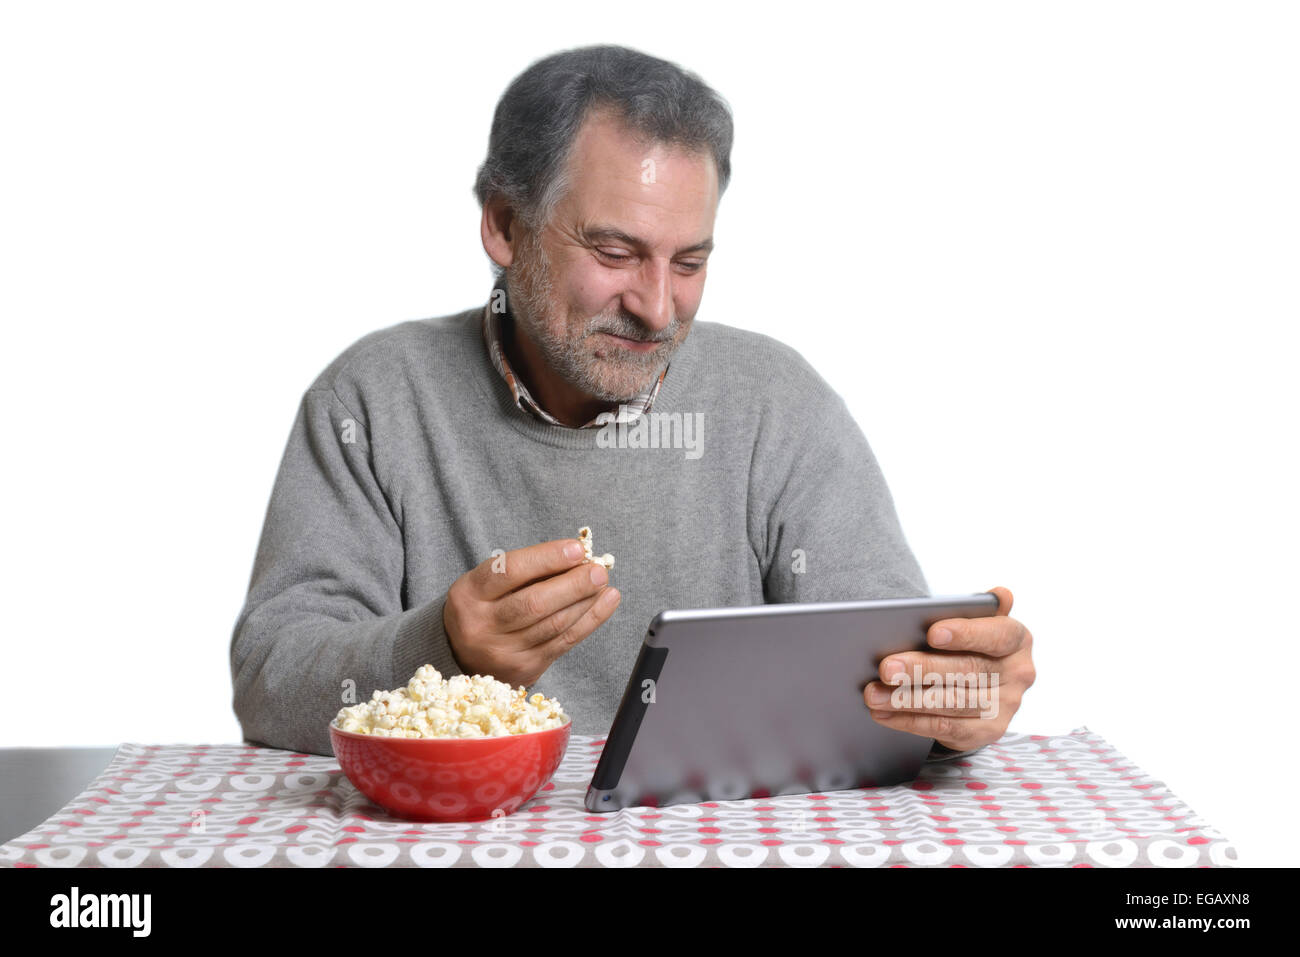 Middle aged man using a tablet computer while eating popcorn at home - Stock Image